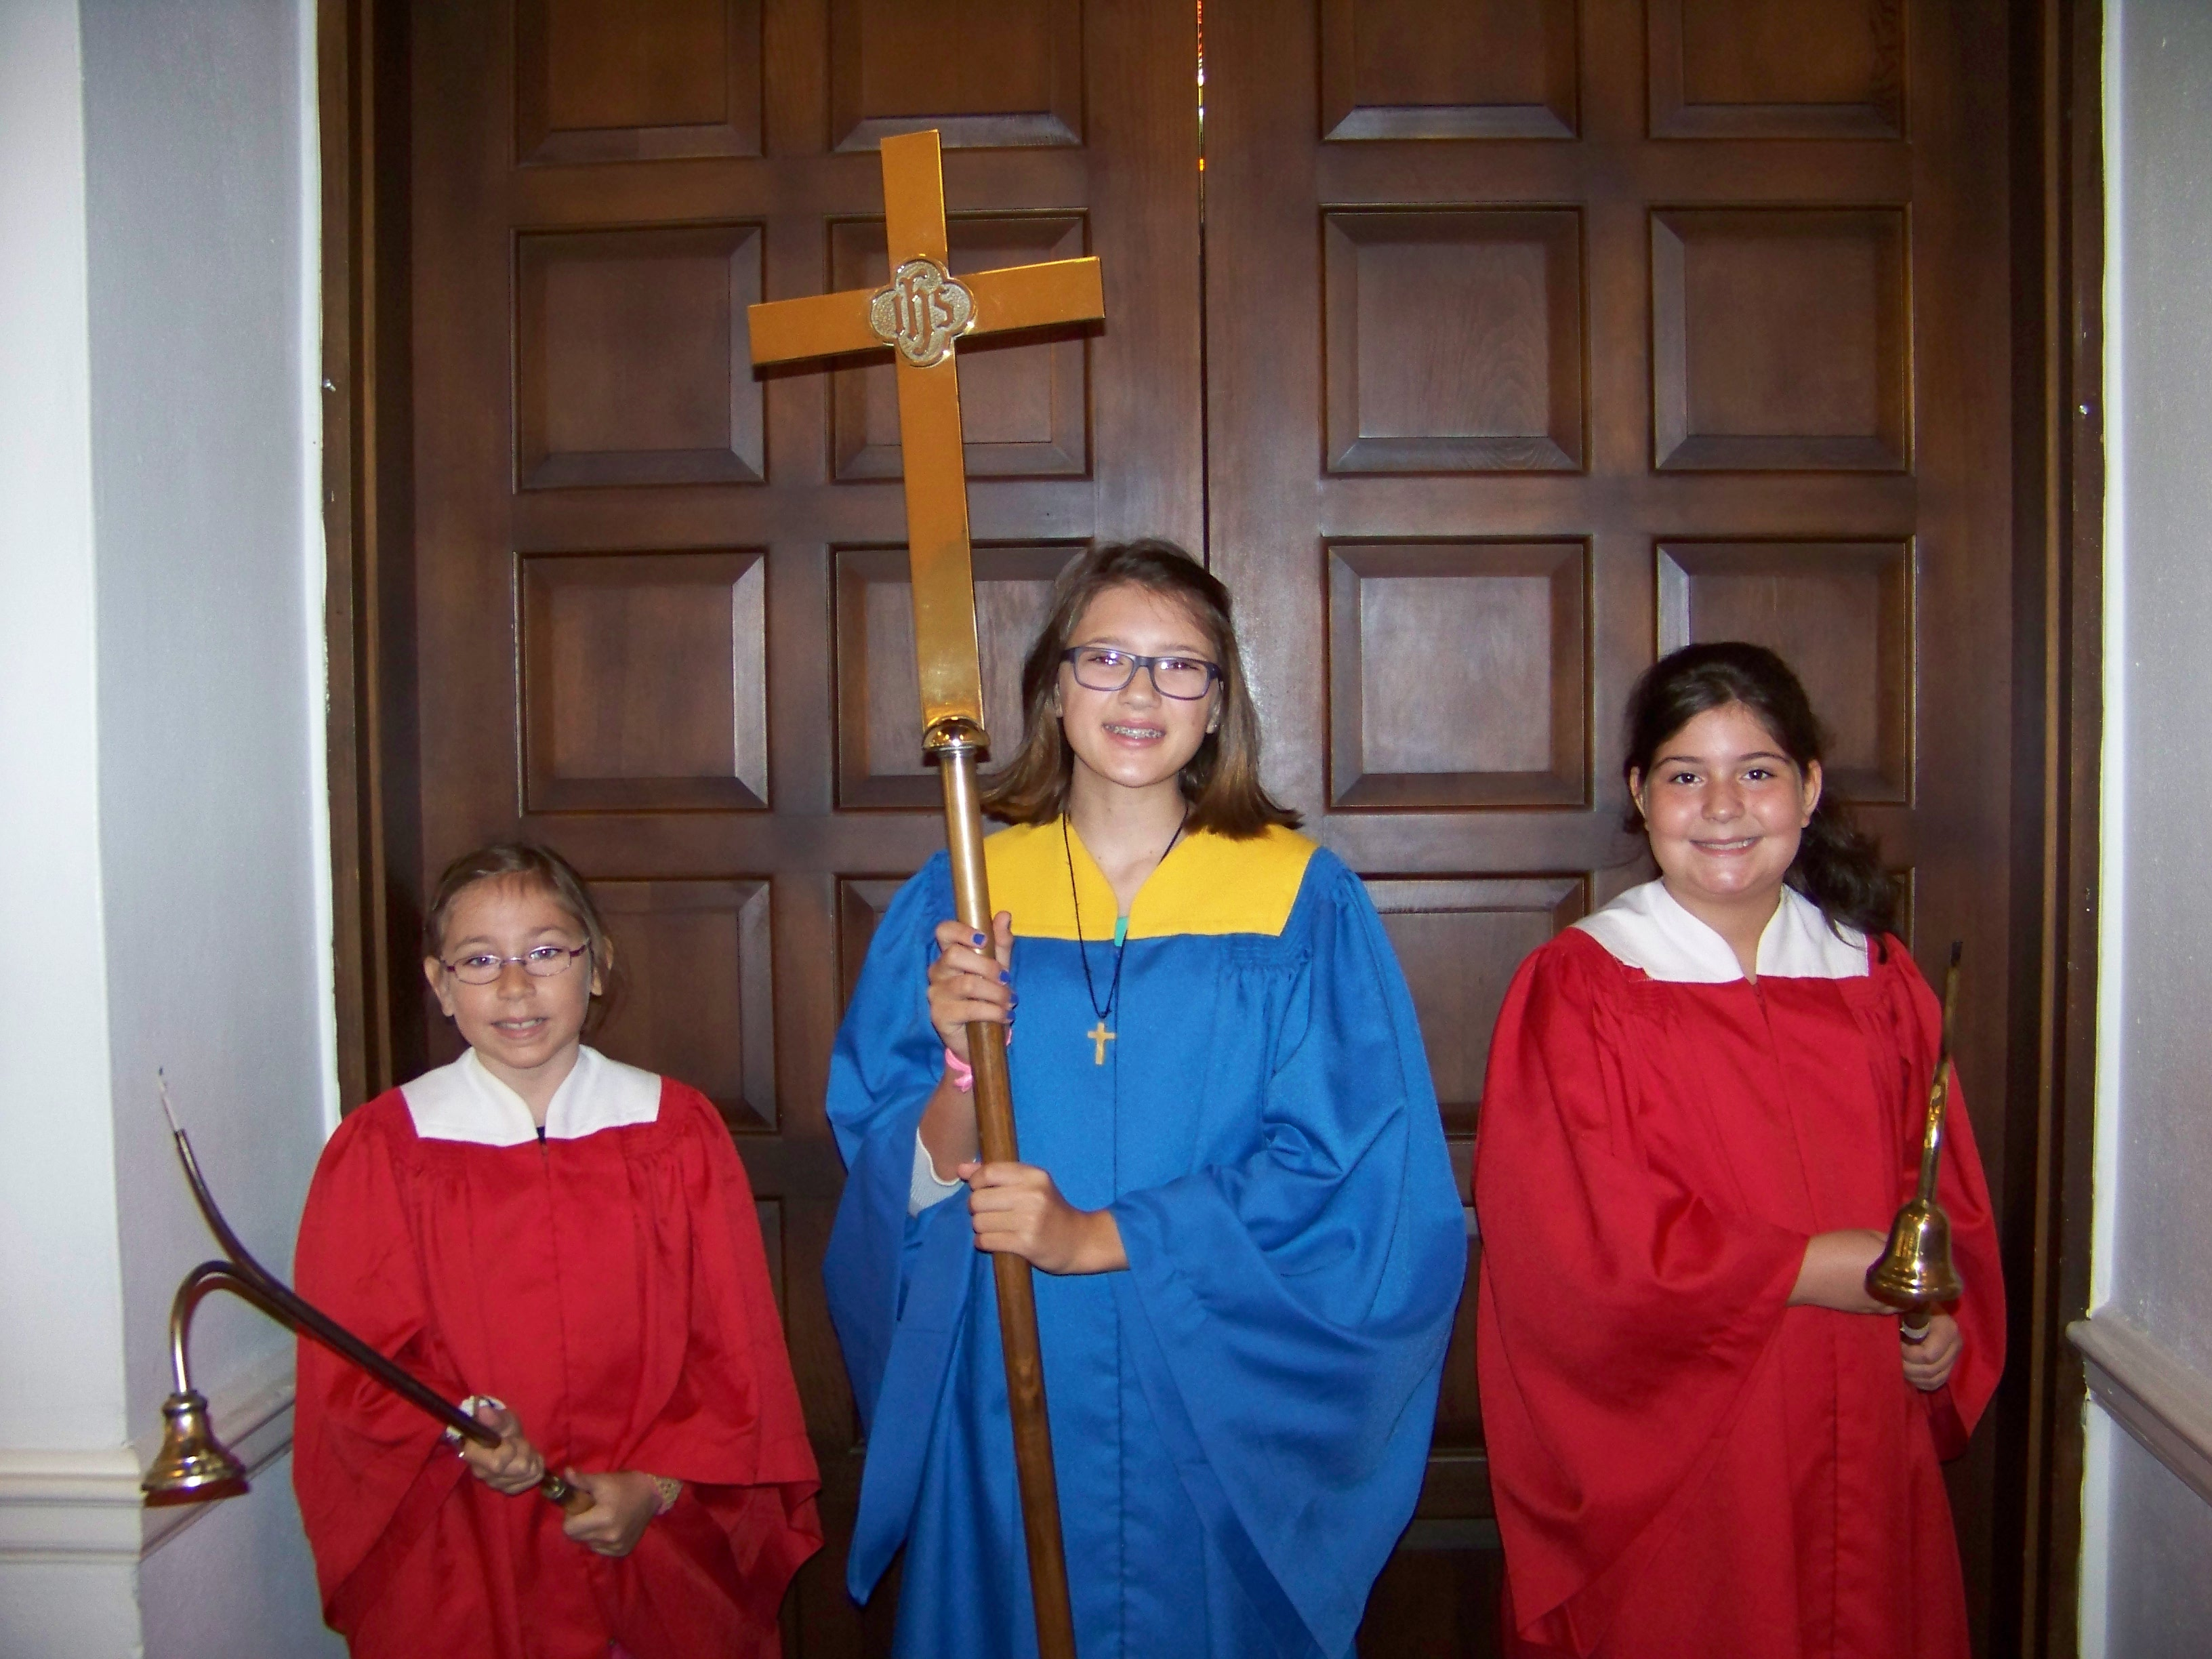 Acolytes and Cross Bearer